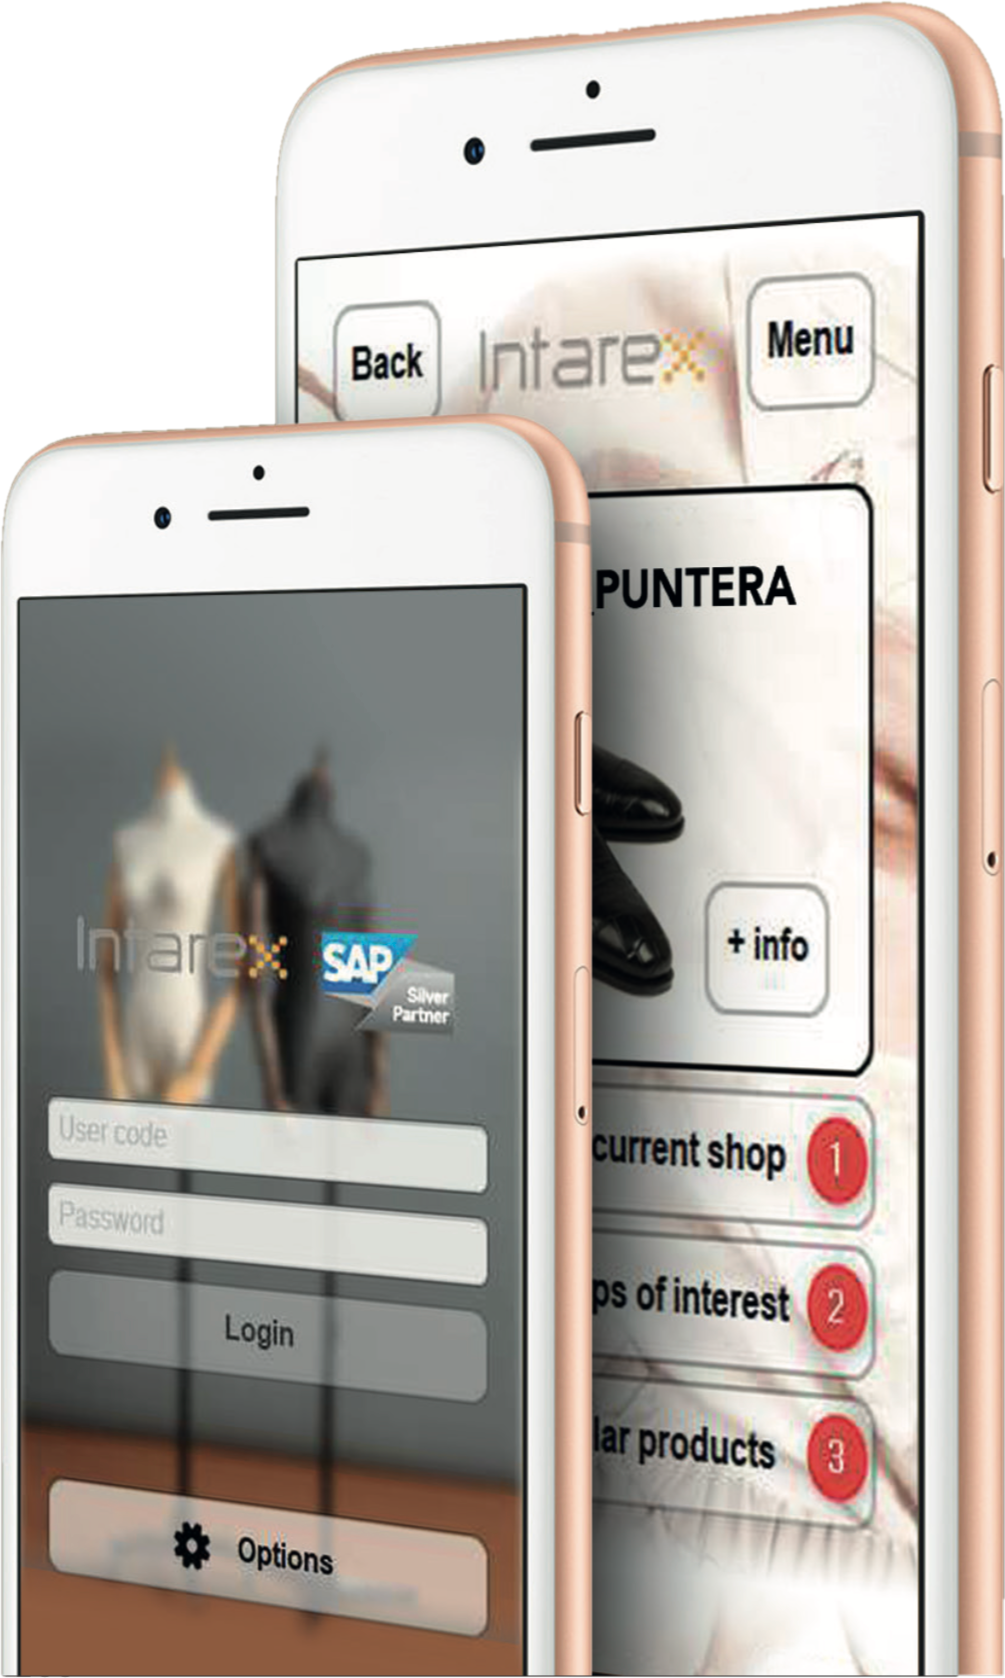 inshop software moda